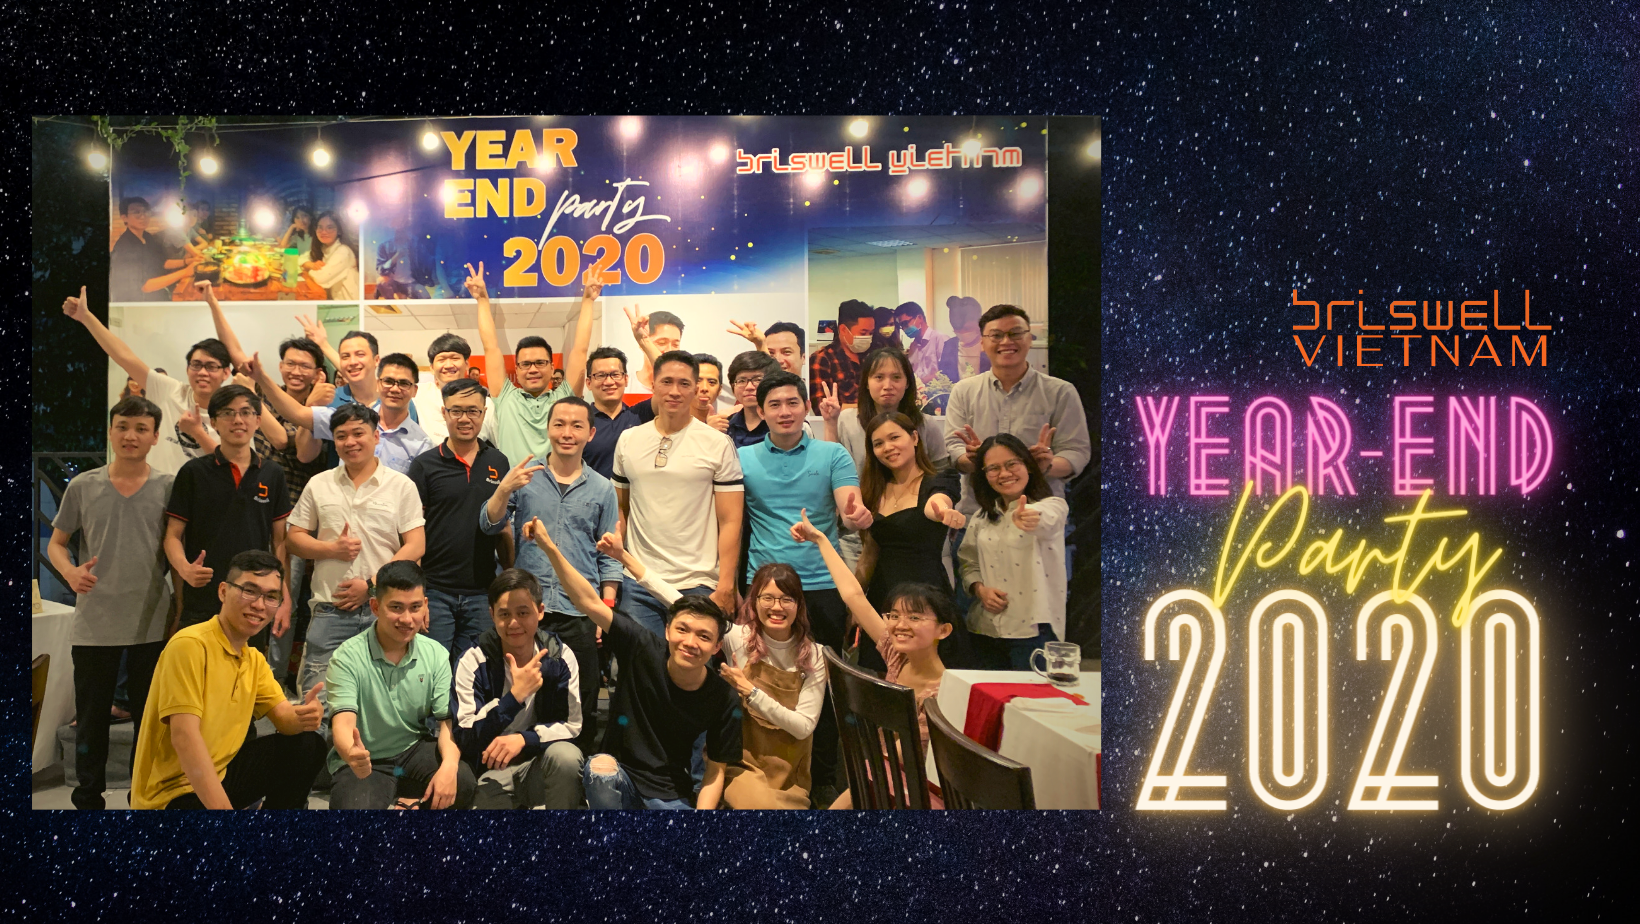 YEAR END PARTY 2020 – BRISWELL VIET NAM